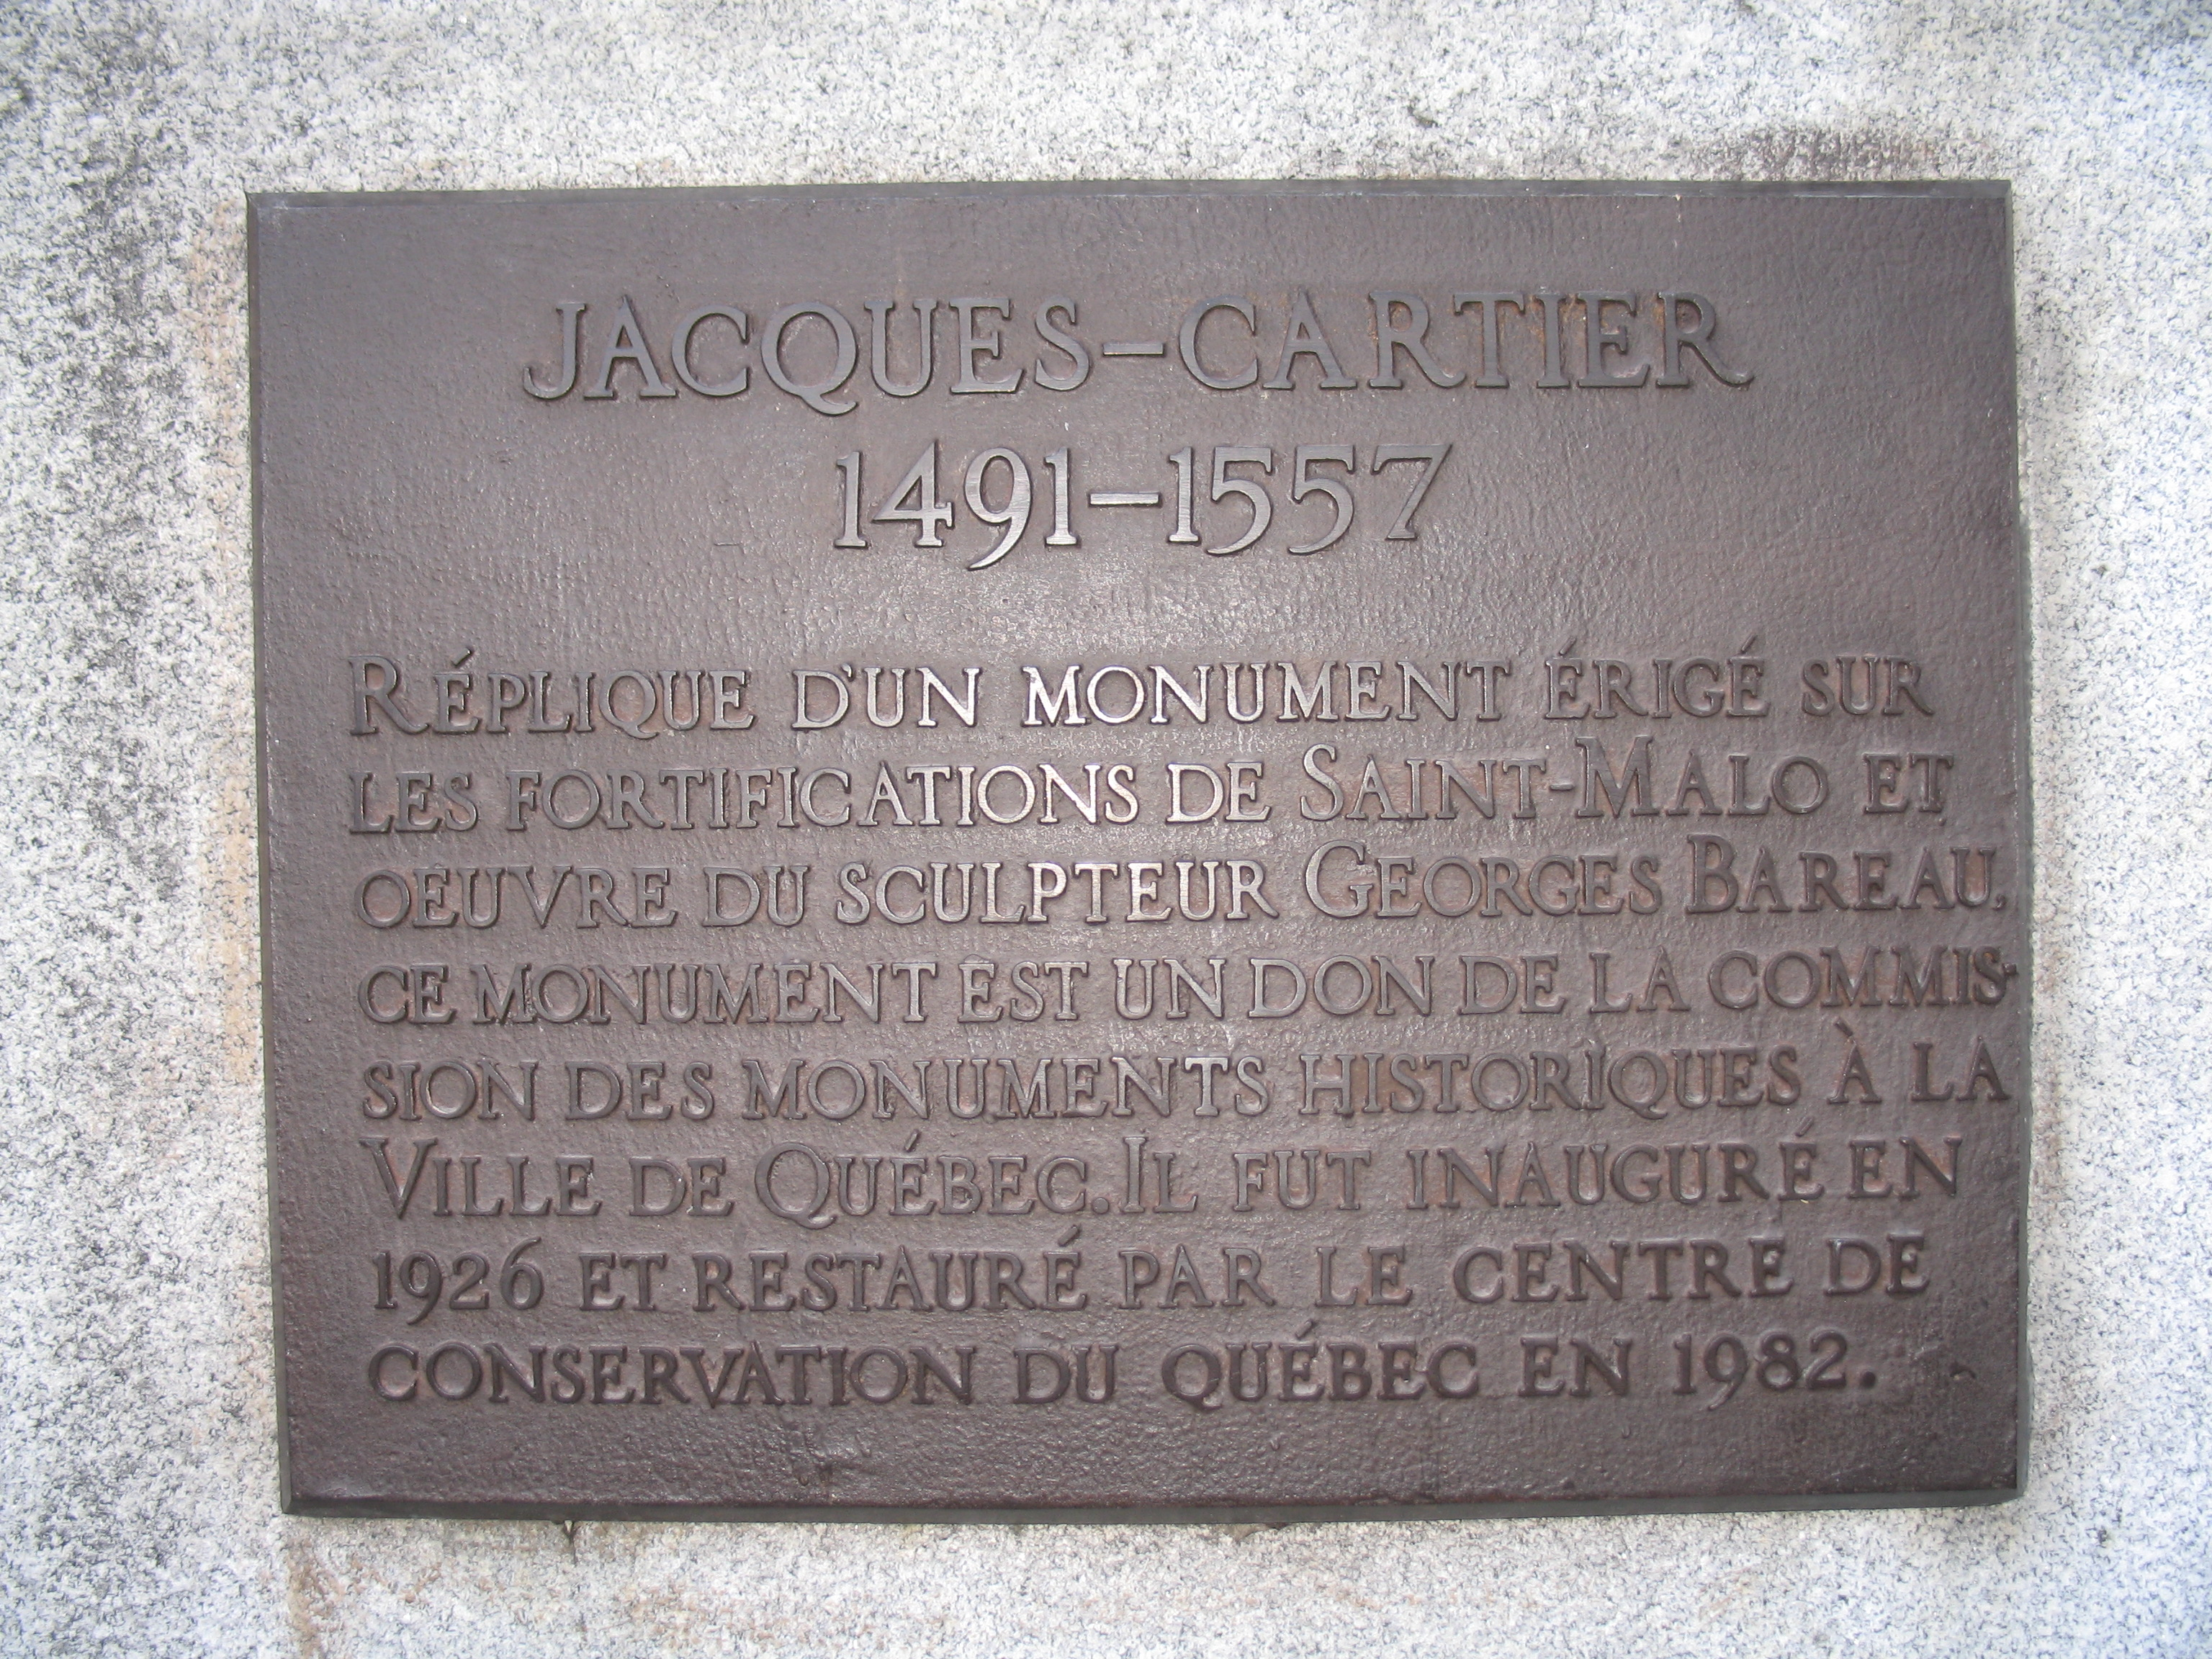 Plaque on the statue of Jacques Cartier (1491-1557) in front of the Gabrielle-Roy public library, in the Saint-Roch part of Quebec City. The inscription in French reads: